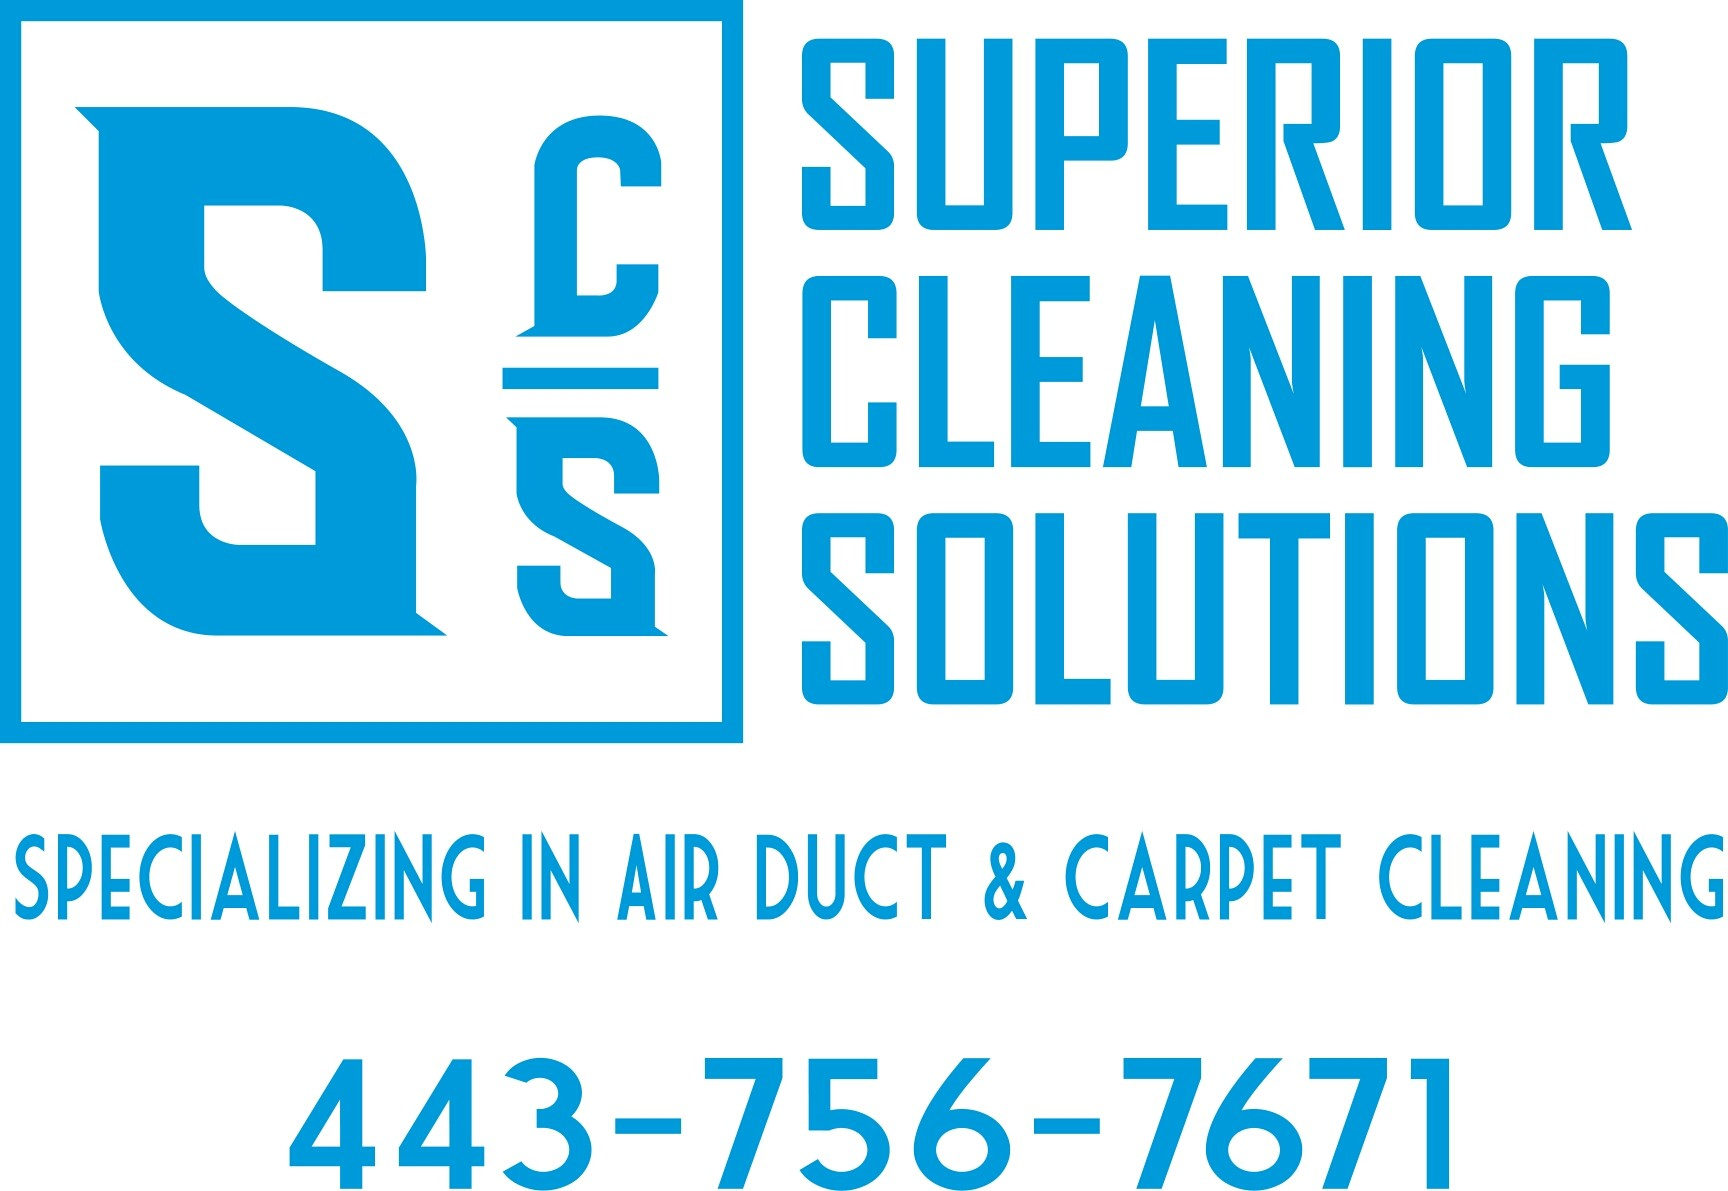 Superior Cleaning Solutions Llc Linkedin